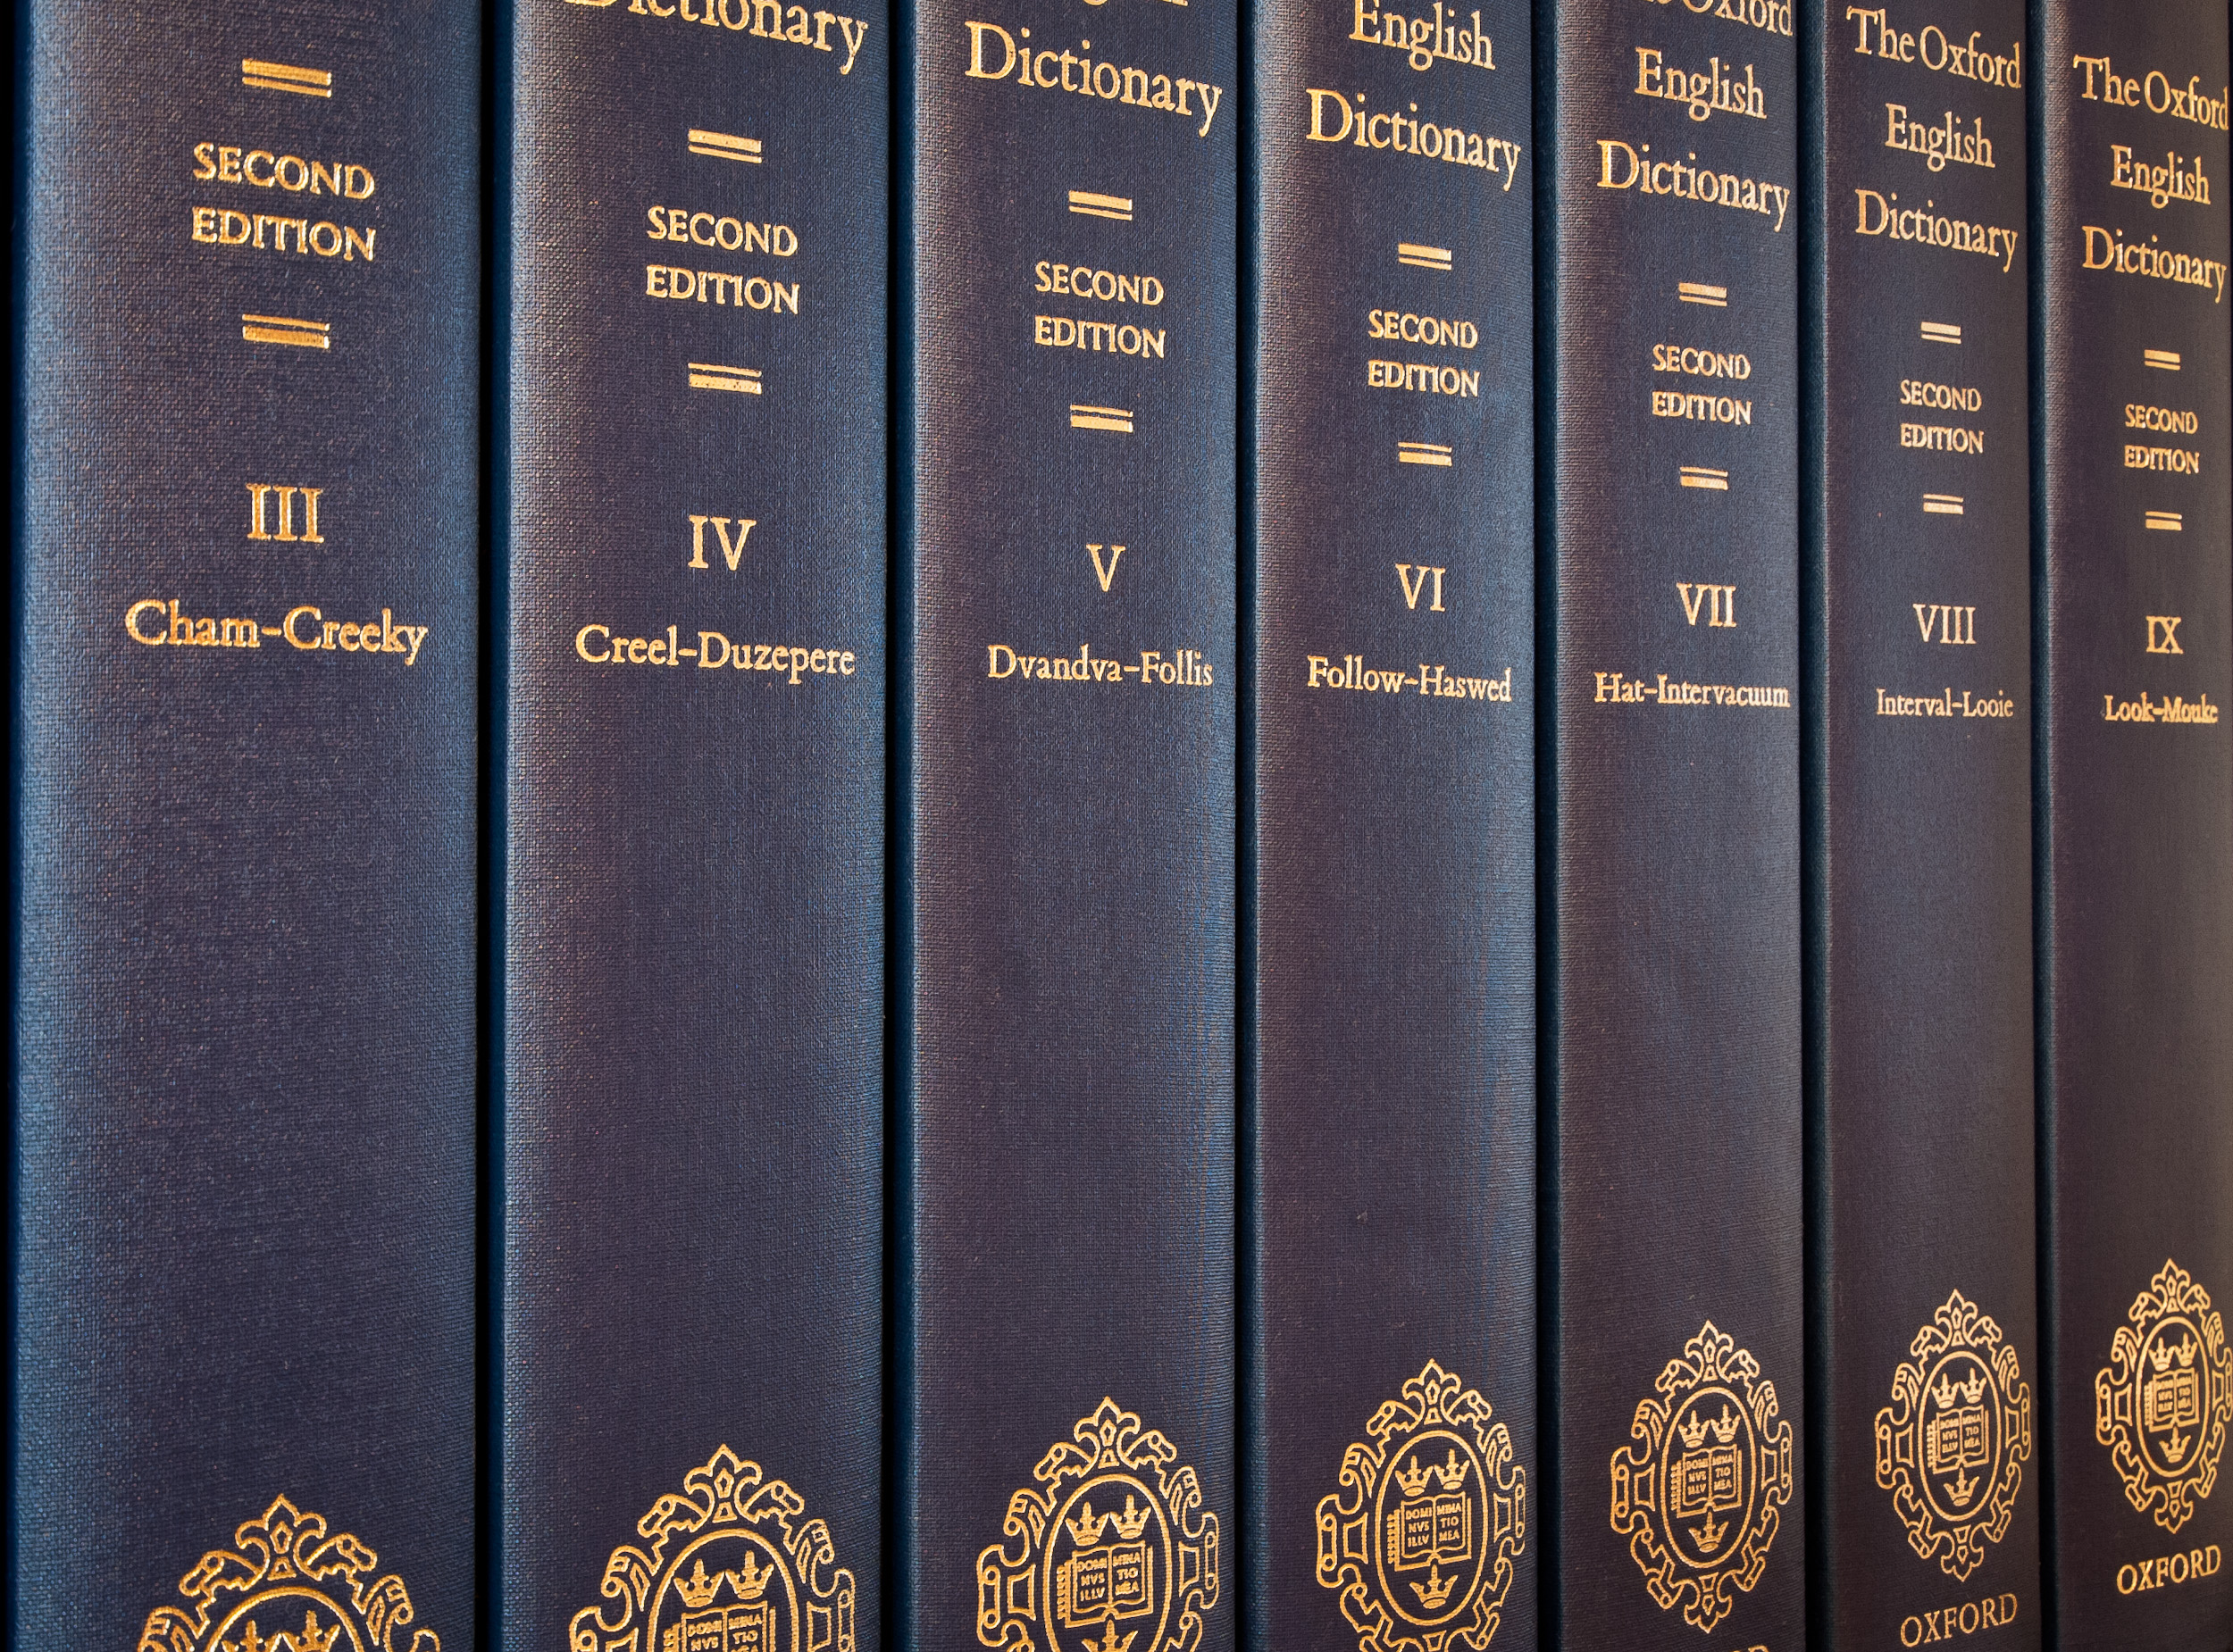 024 Oed2 Volumes Manual For Writers Of Researchs Theses And Dissertations Magnificent Research Papers A Amazon 9th Edition 8th 13 Full